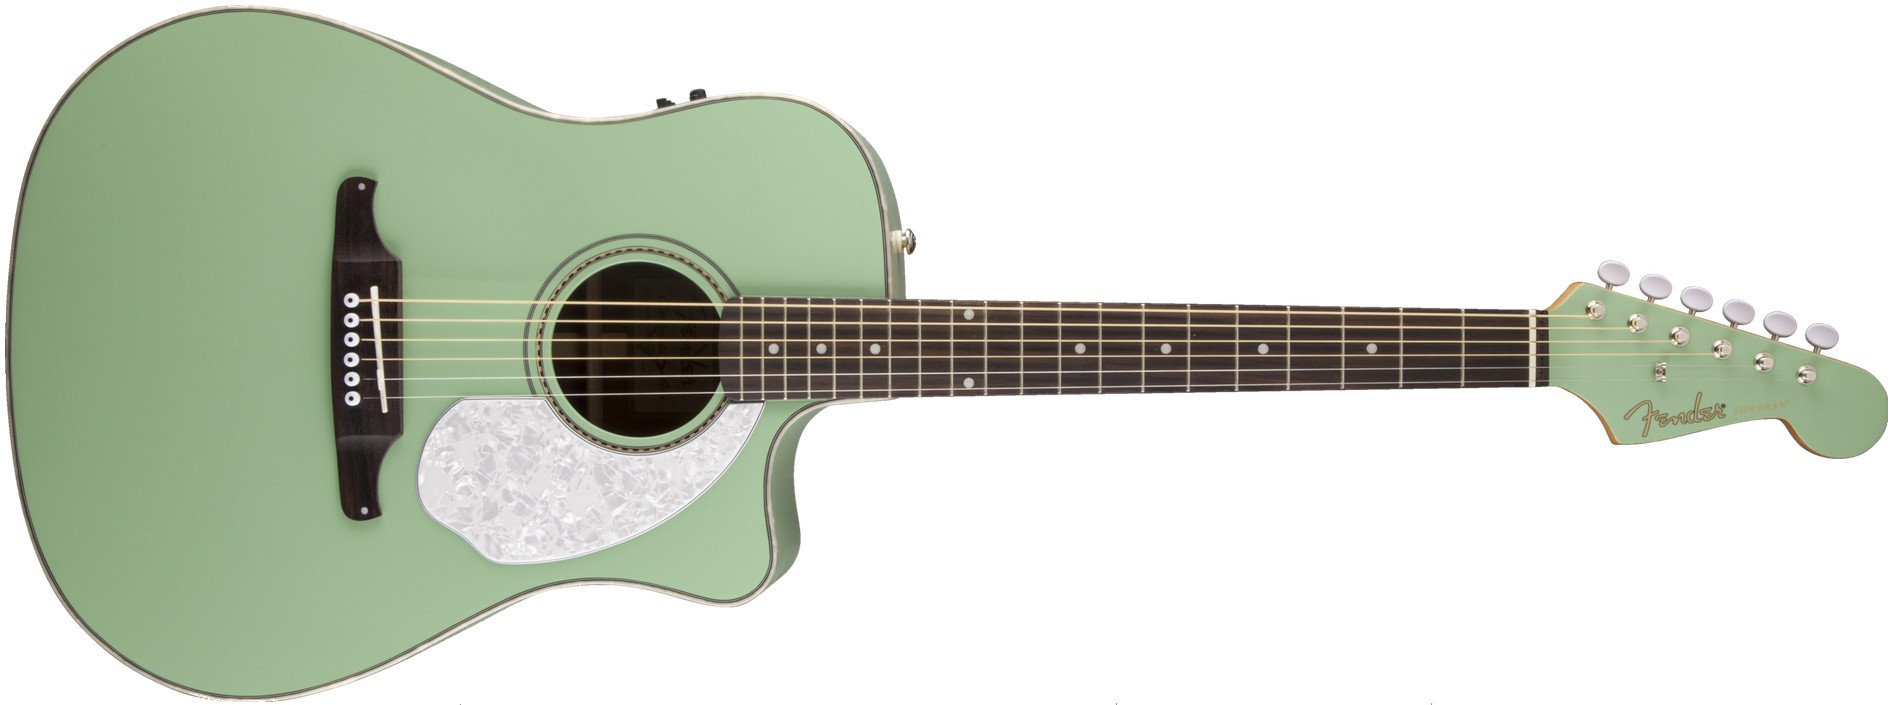 Surf Green California Series Dreadnought Cutaway Acoustic/Electric Guitar with Fishman Isys III Electronics